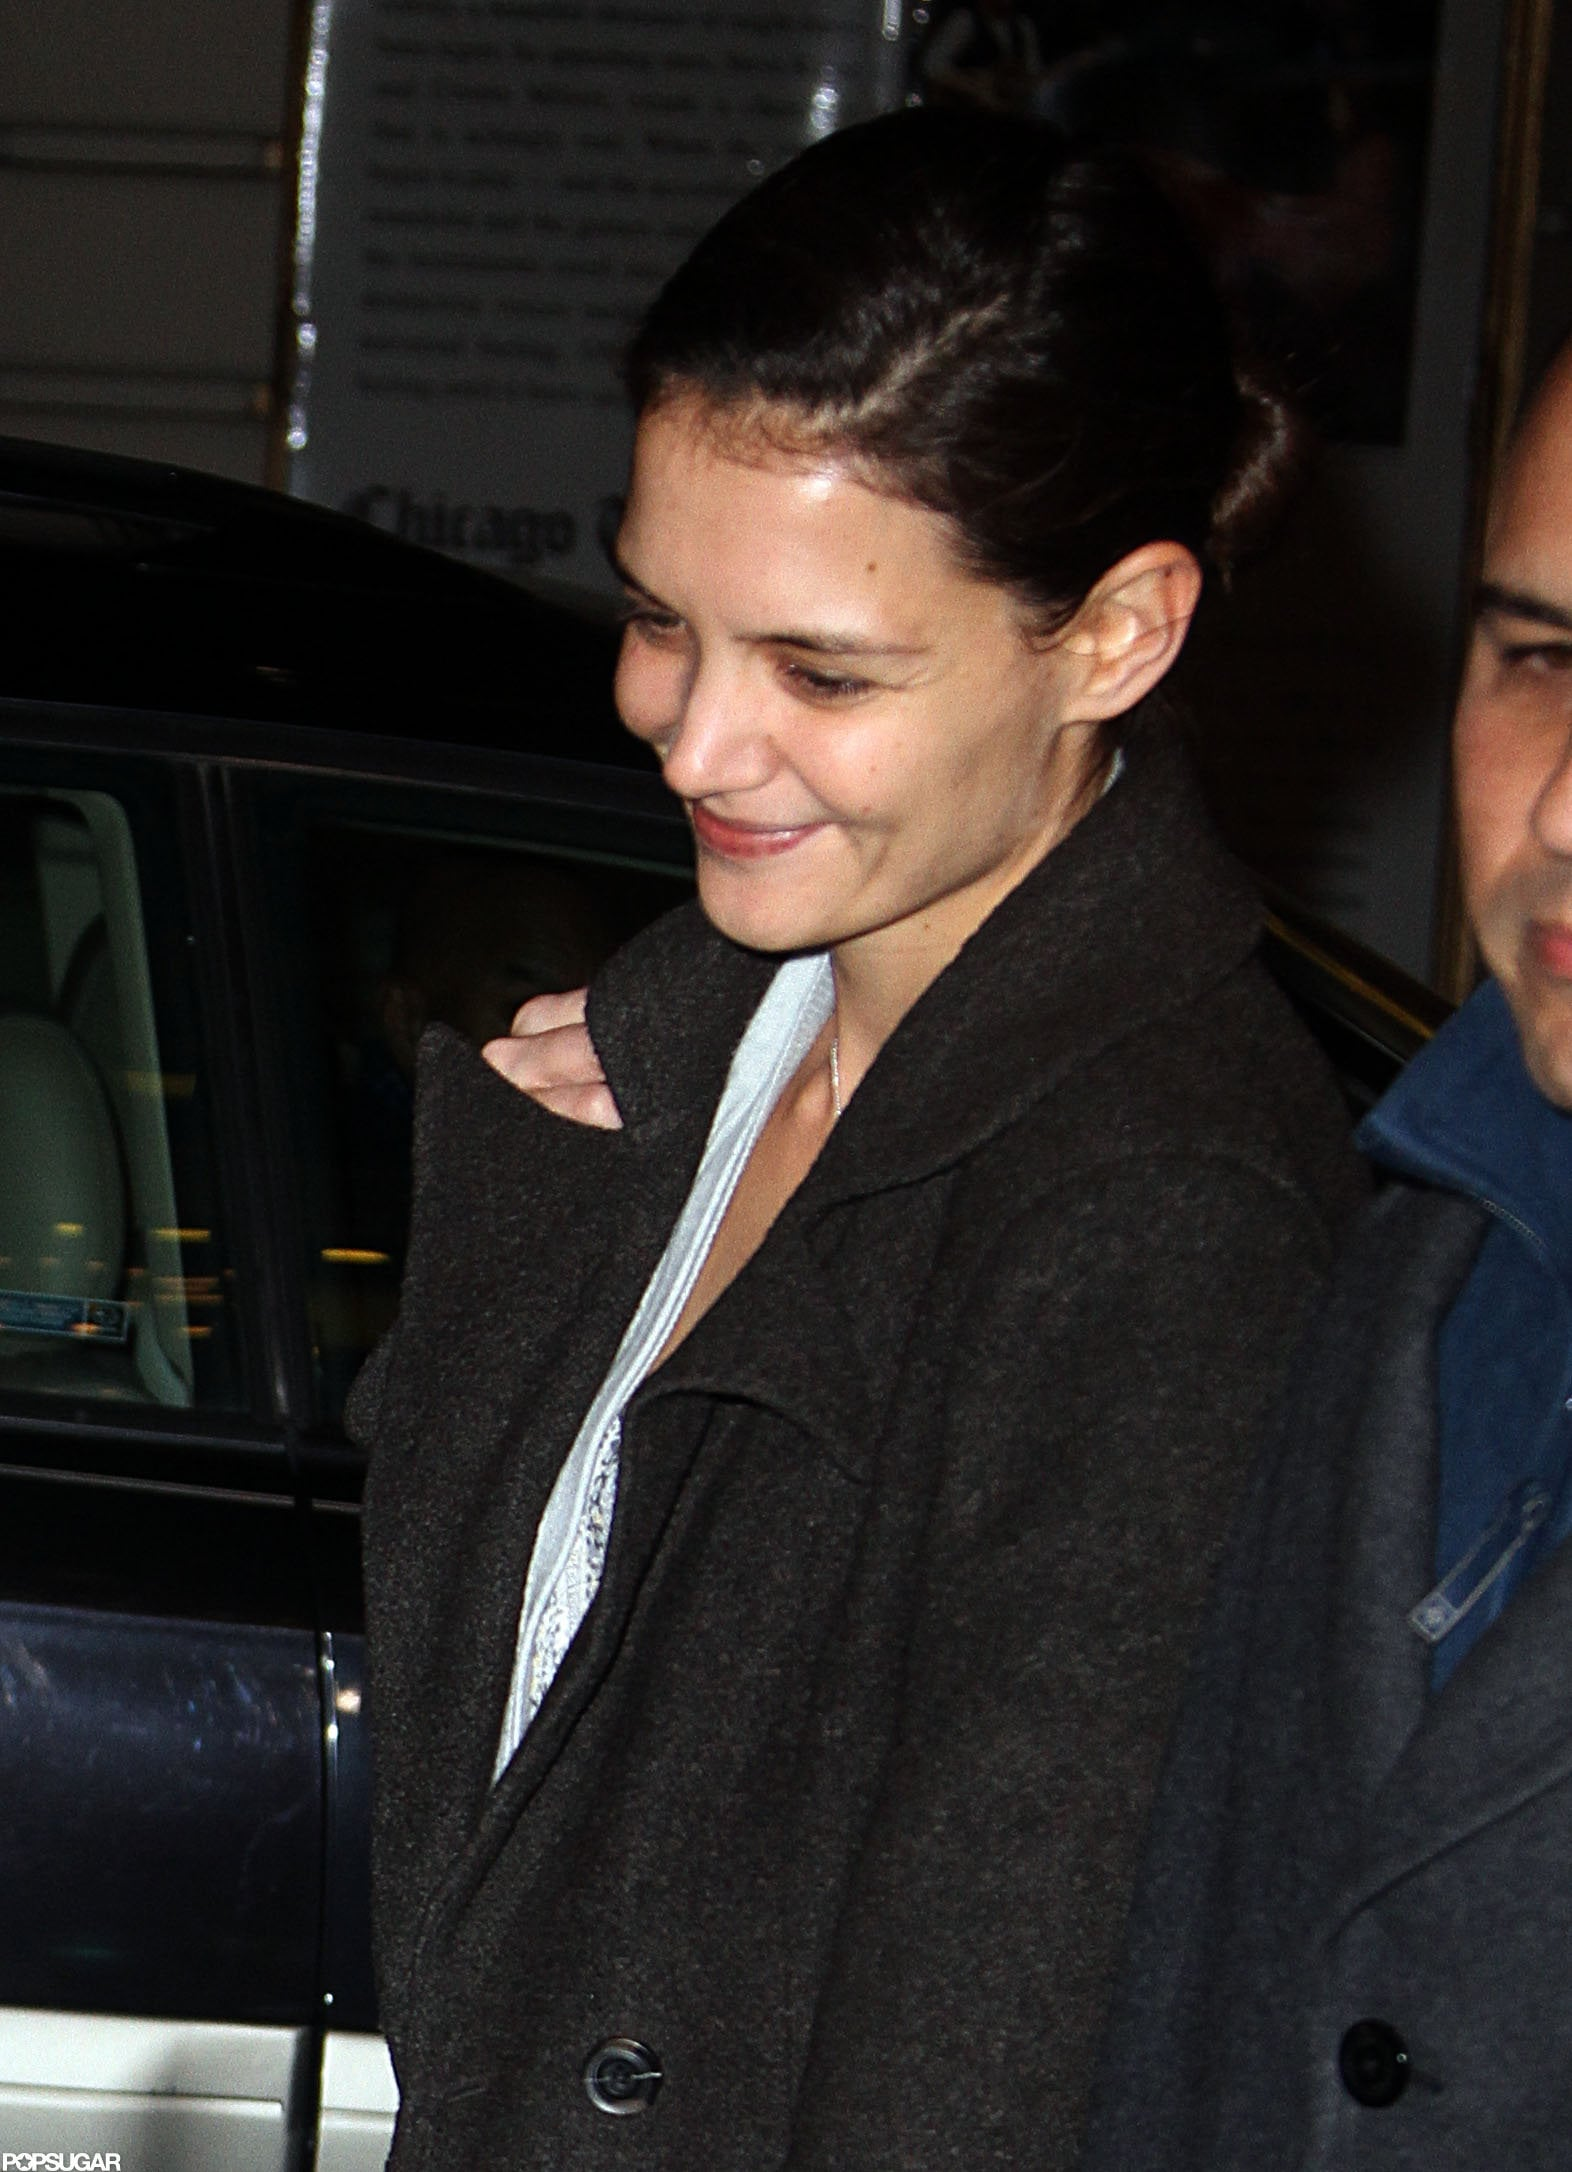 Katie Holmes left her Broadway show smiling.